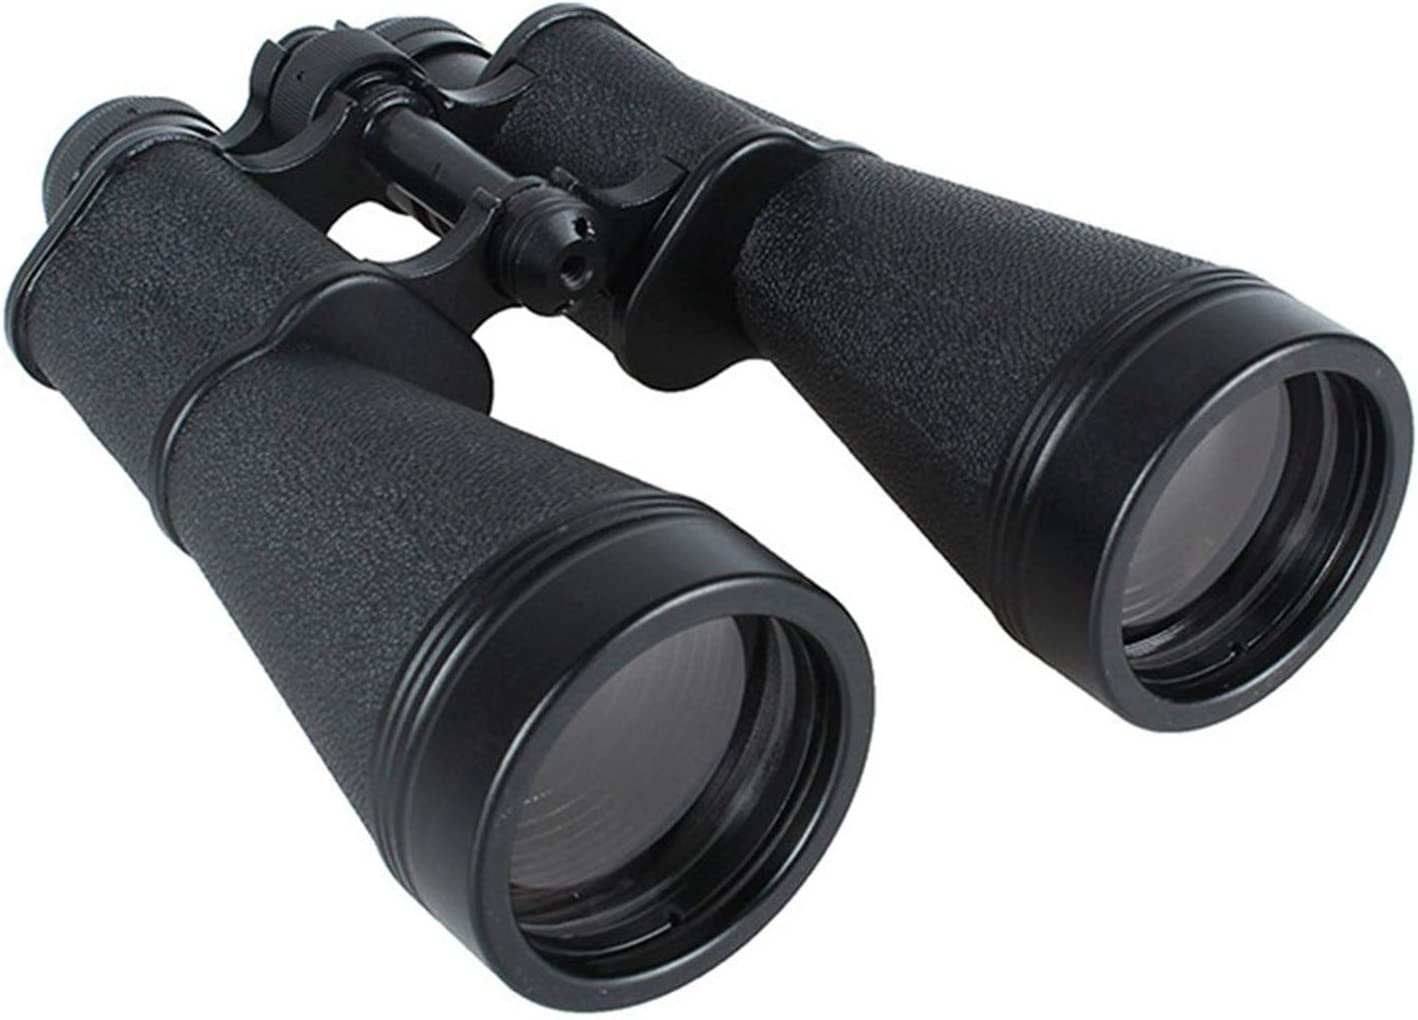 Max 40% OFF whdz Telescope for Adults 15x60 Large-scale sale Binocu High-Definition